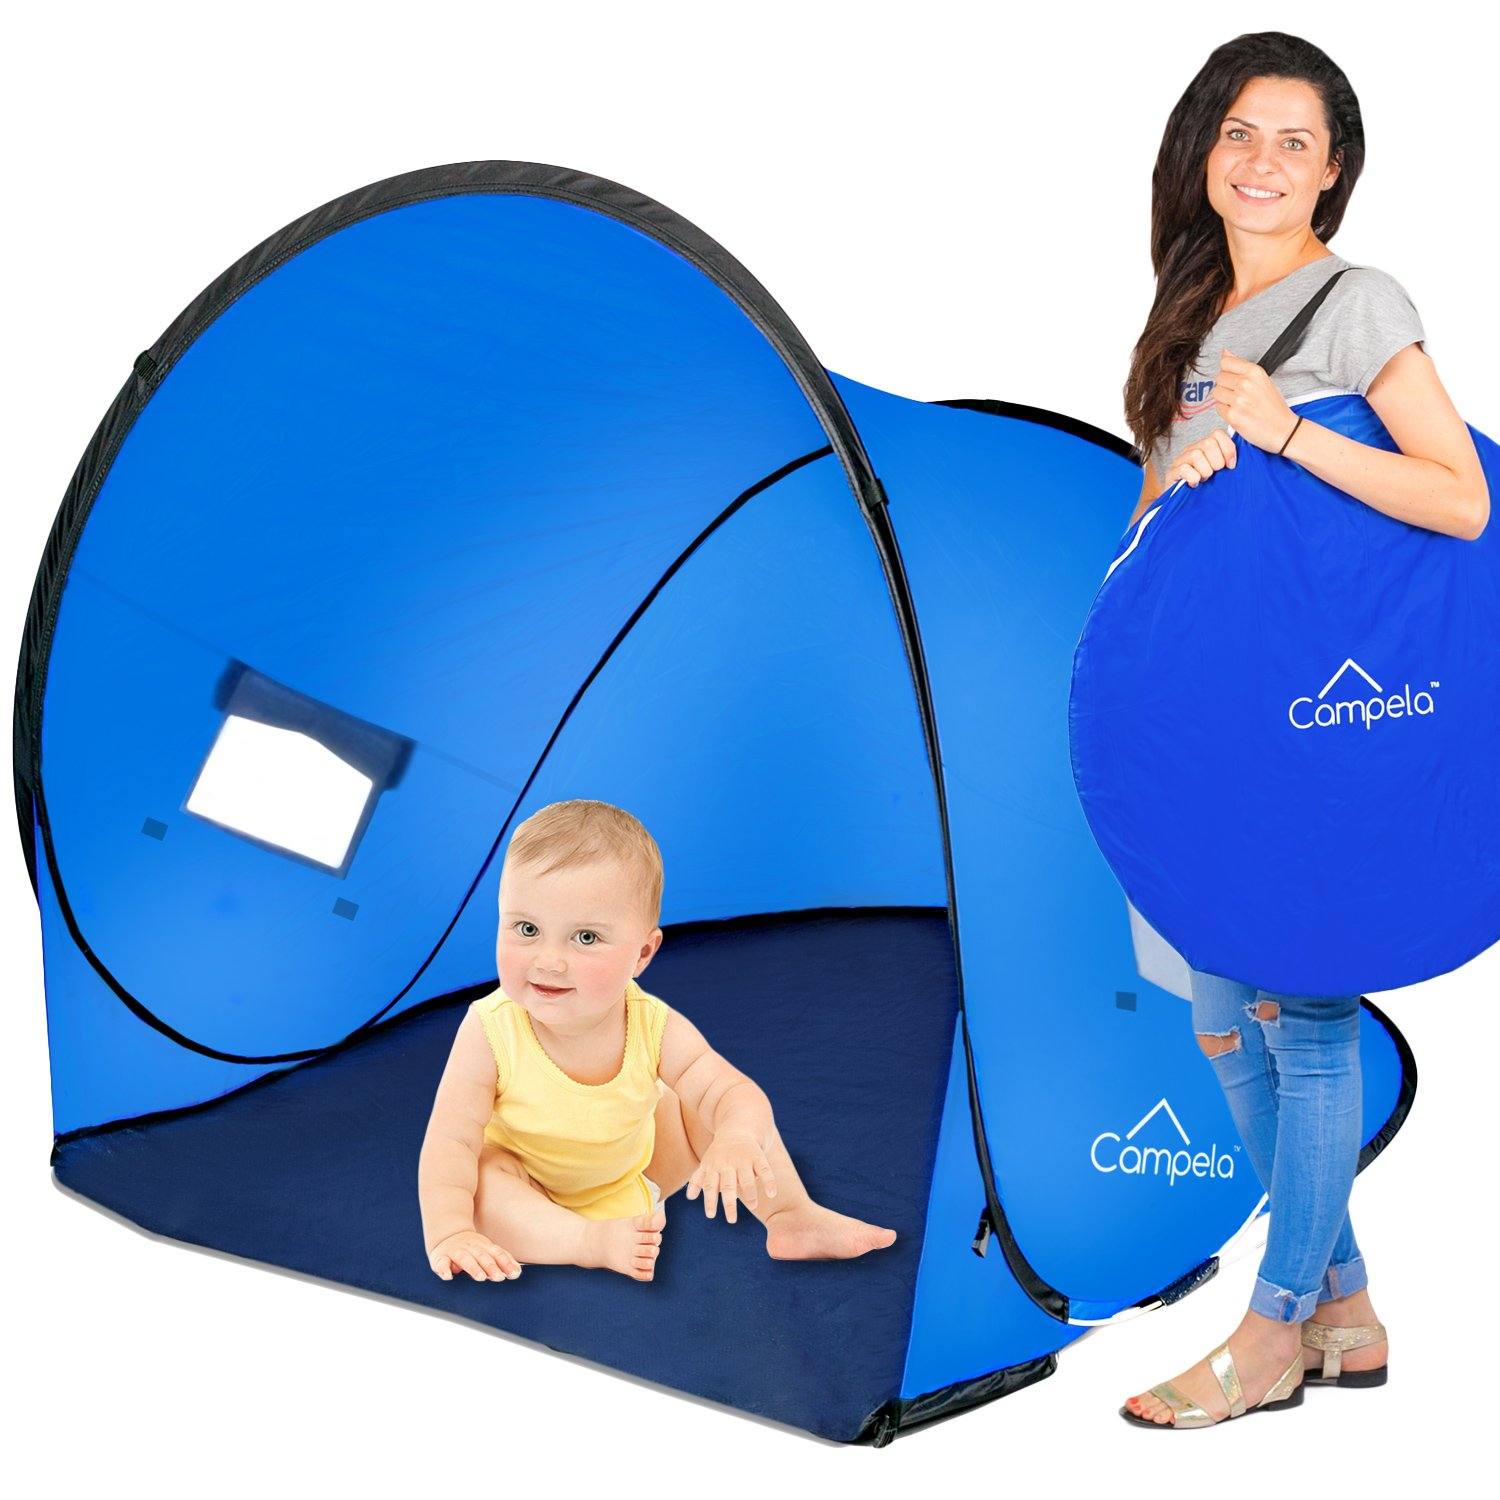 Campela Baby Beach Tent UV - Infant Shelter Camping Cabana Pop up Shade Gear Sun Babies Shelter Portable Great Toddler Shelters for Beach!